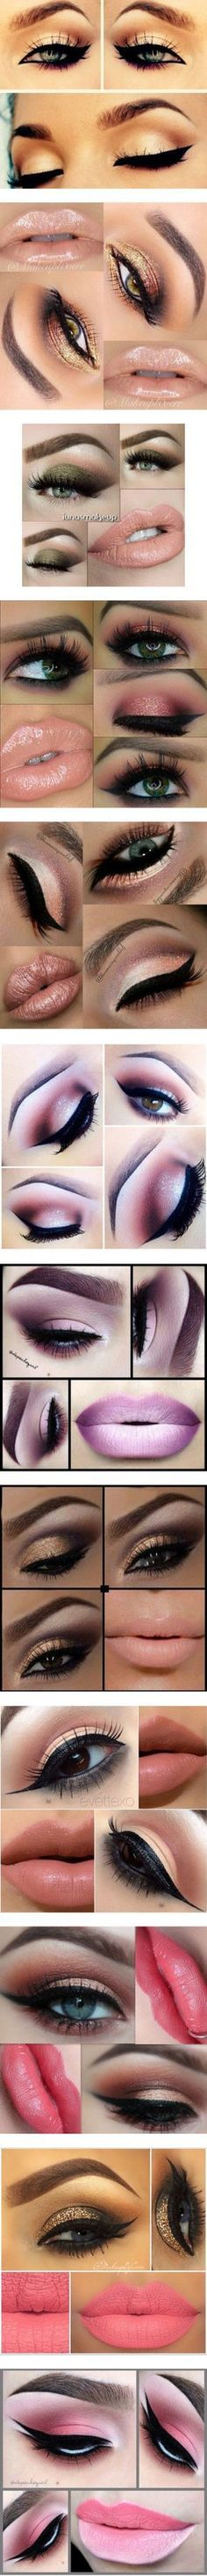 Beauty by dariarosek on Polyvore featuring beauty products, makeup, eye makeup, eyes, beauty, maquiagem, filler, lips, makeup/nails and lip